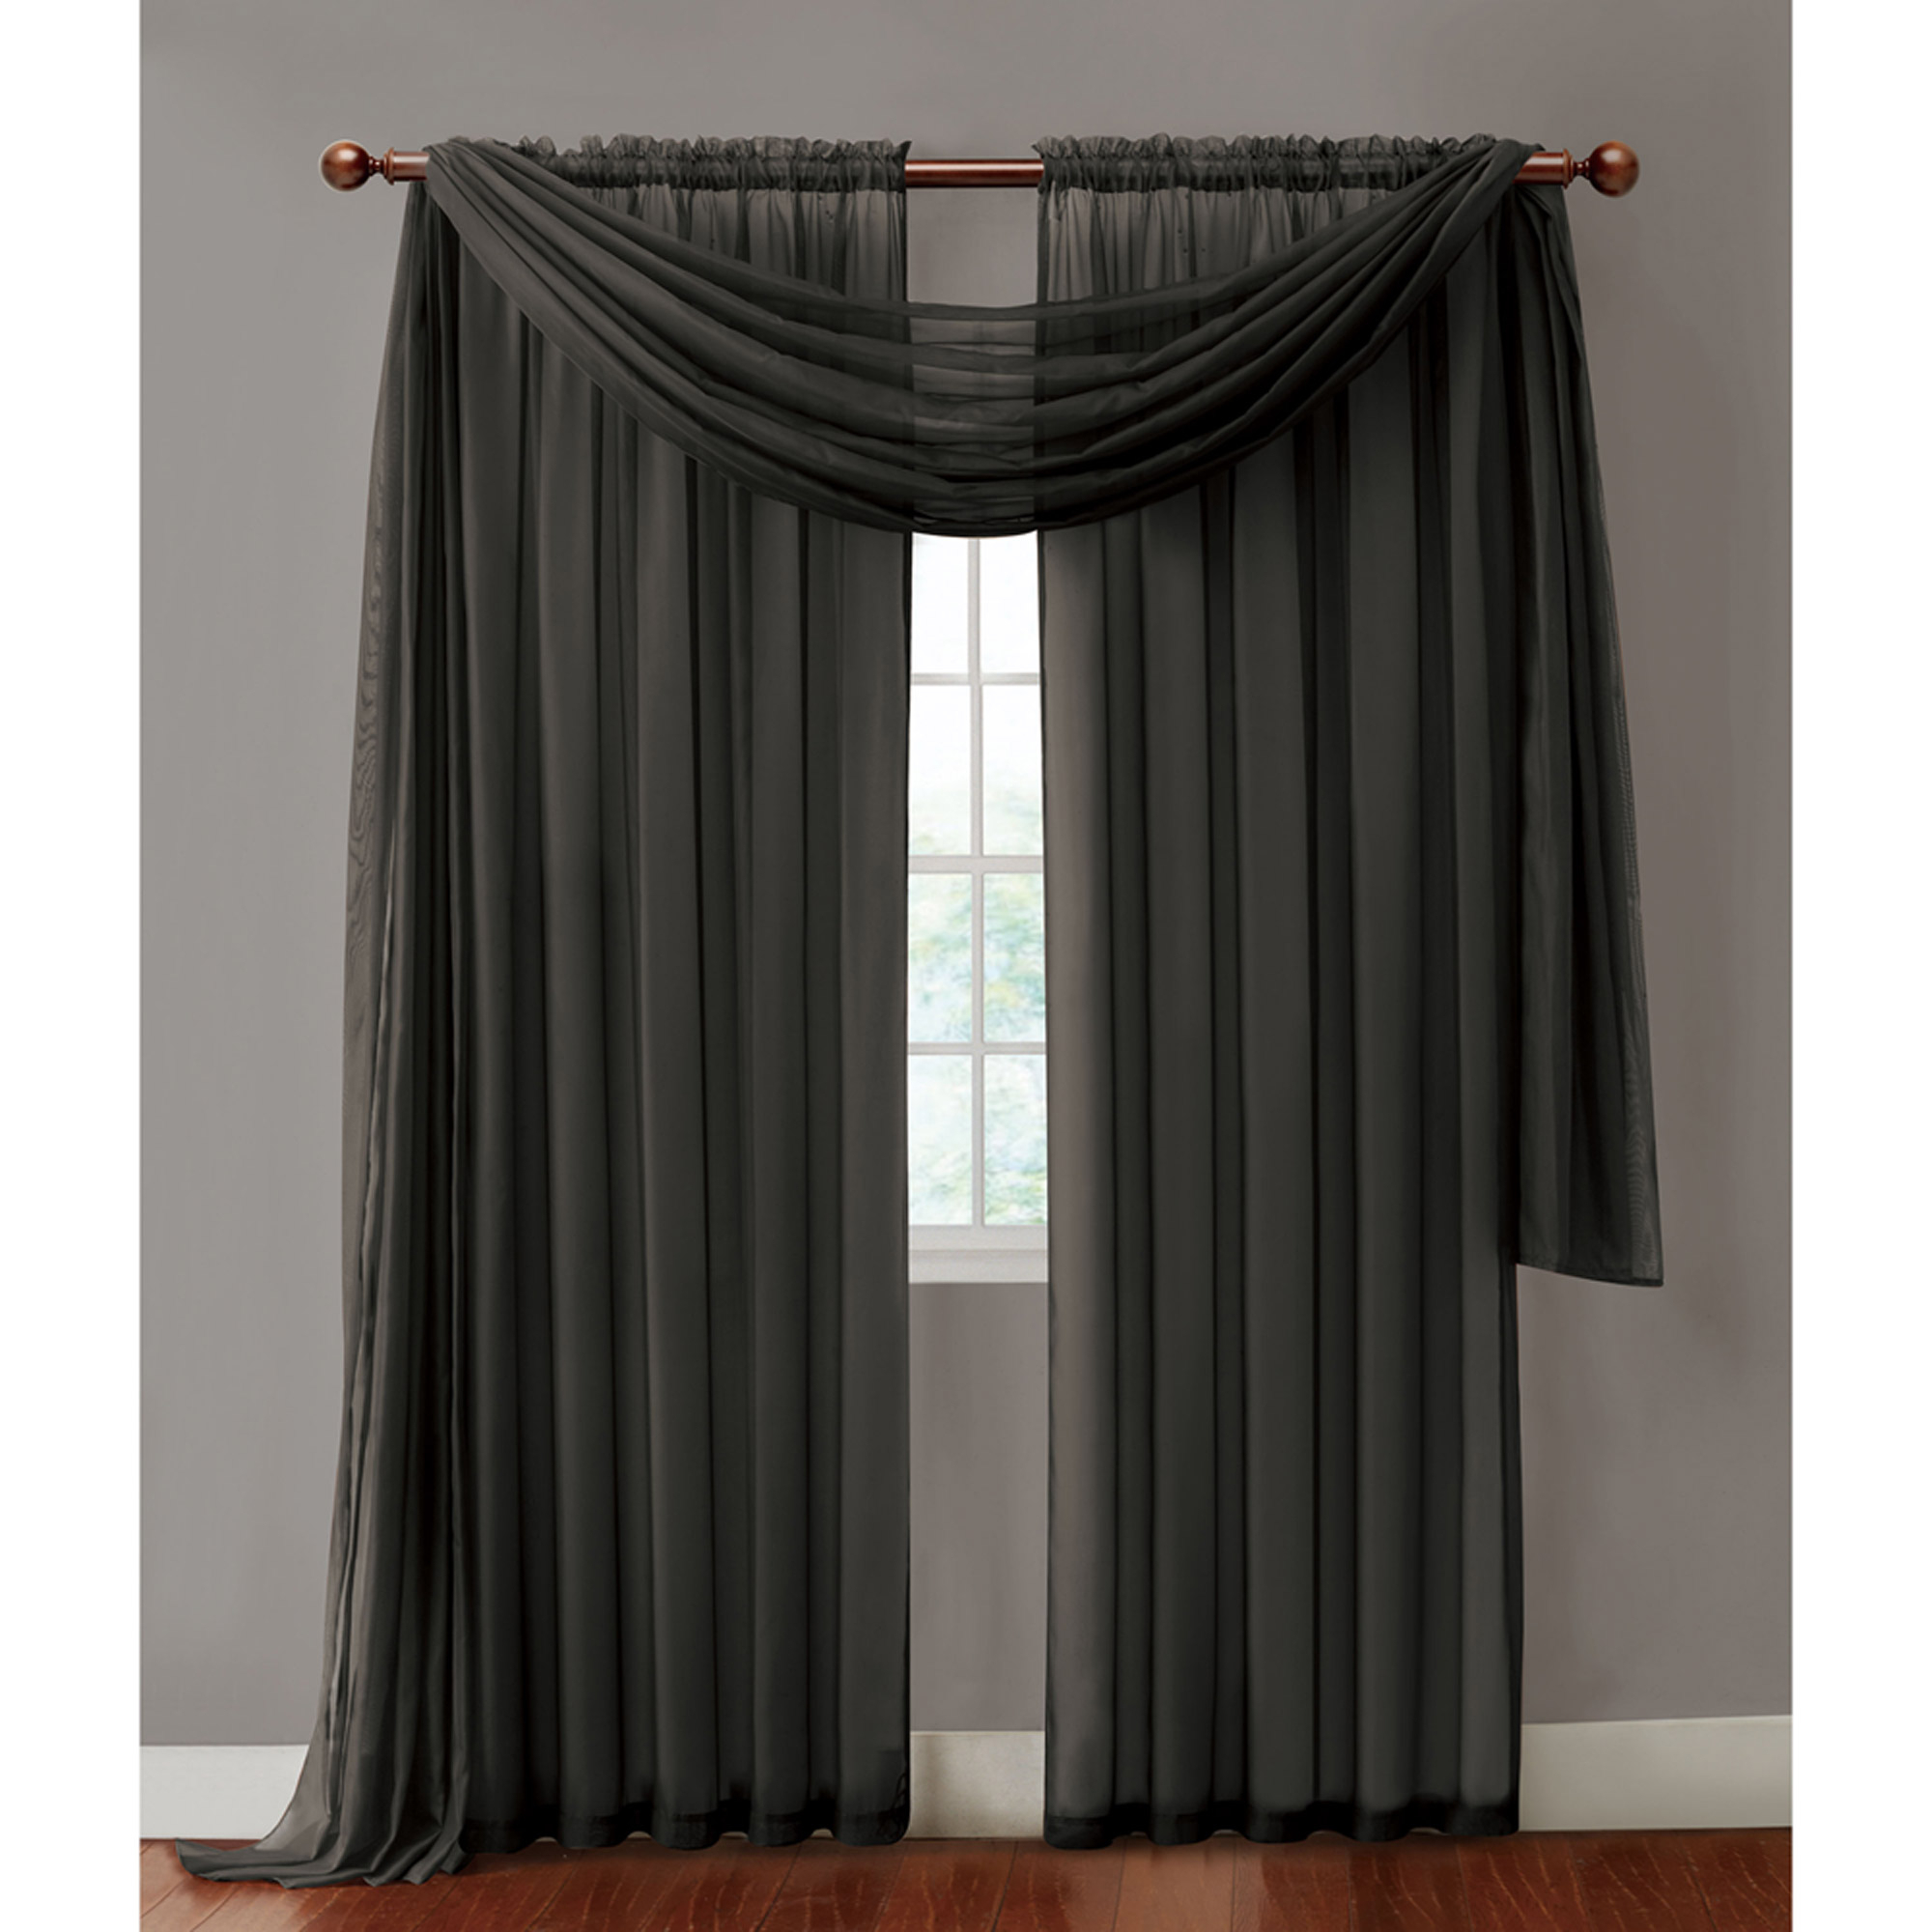 Vcny Home Infinity Sheer Rod Pocket Window Curtains, Multiple Sizes Available – Walmart Regarding Infinity Sheer Rod Pocket Curtain Panels (View 9 of 20)